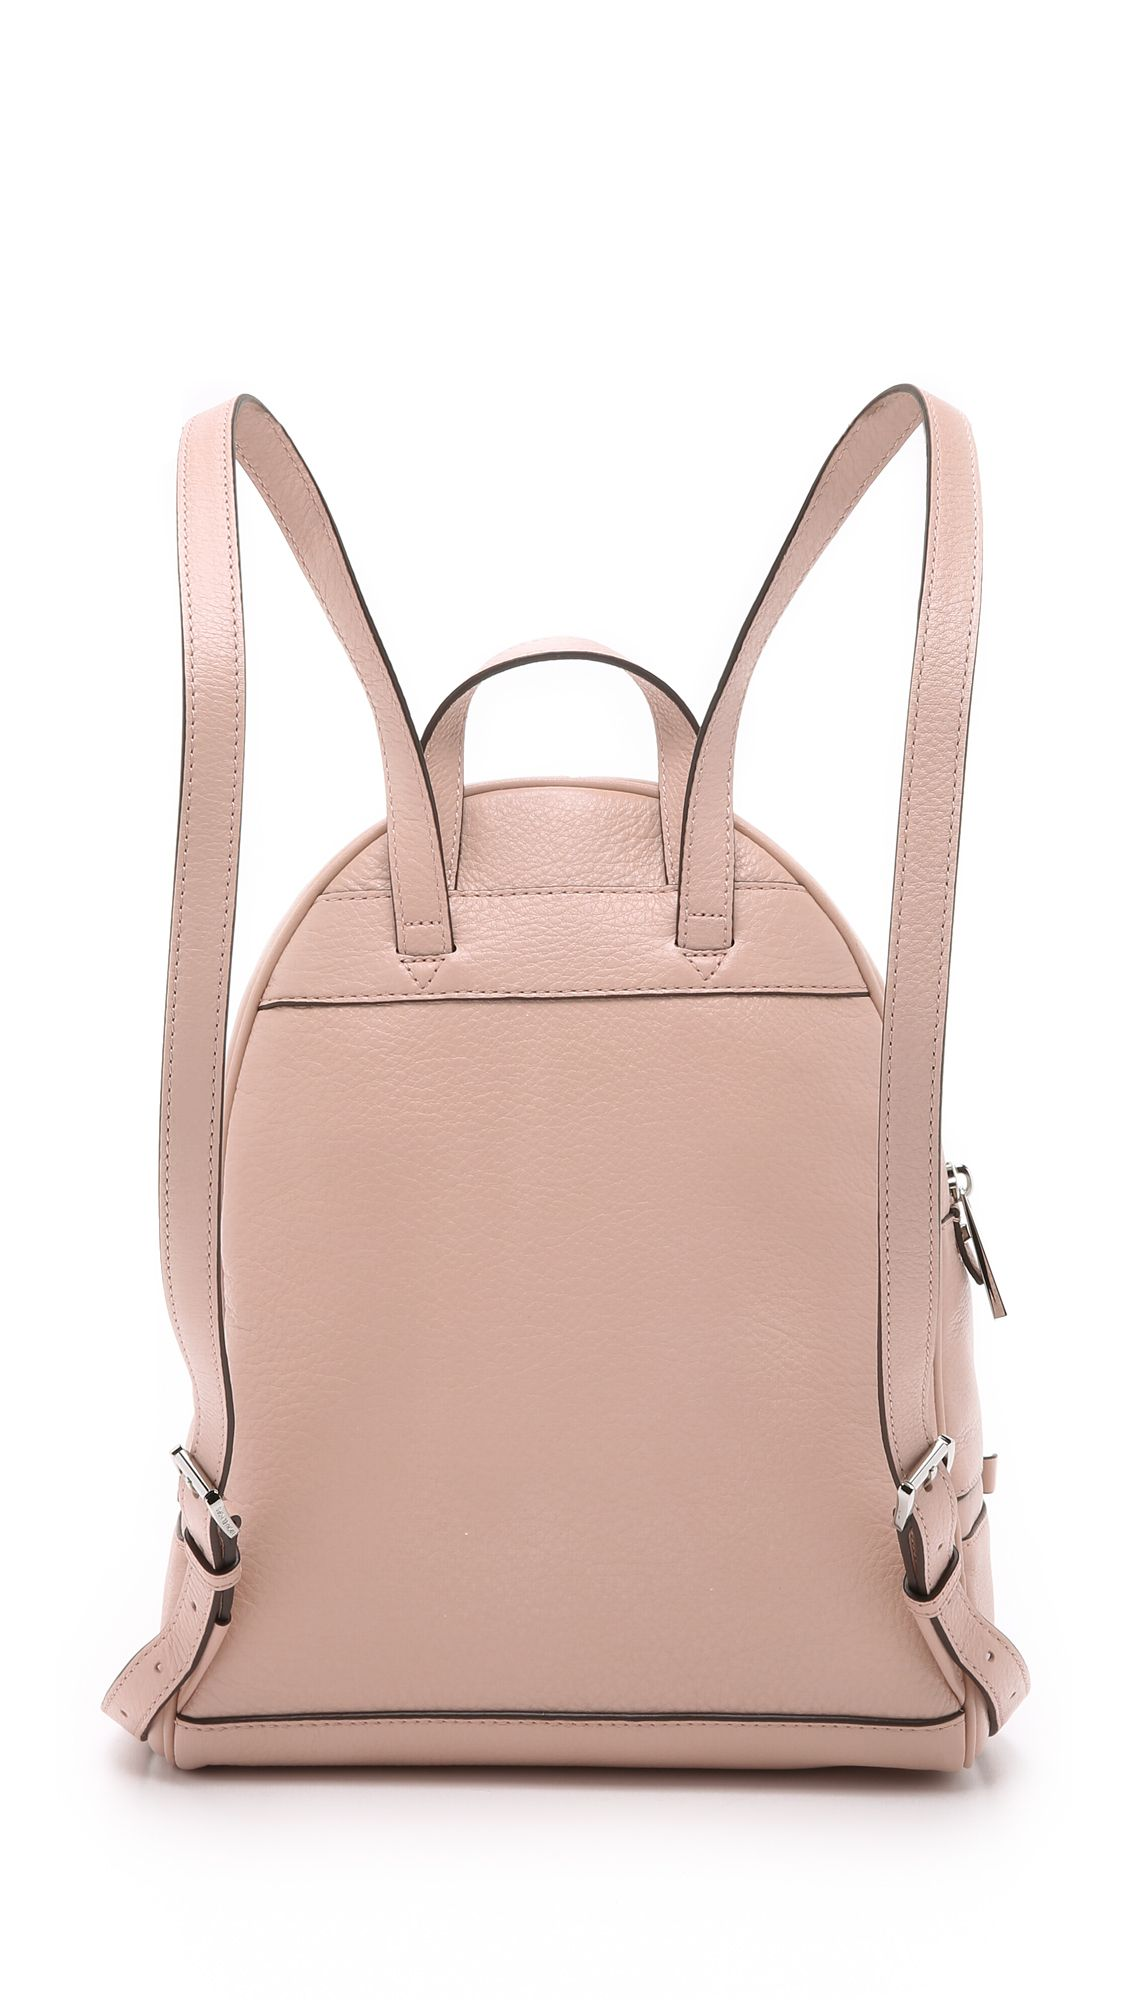 c88b7ddd2e2b Buy MICHAEL Michael Kors Women's Pink Rhea Small Backpack - Sky, starting  at Similar products also available.